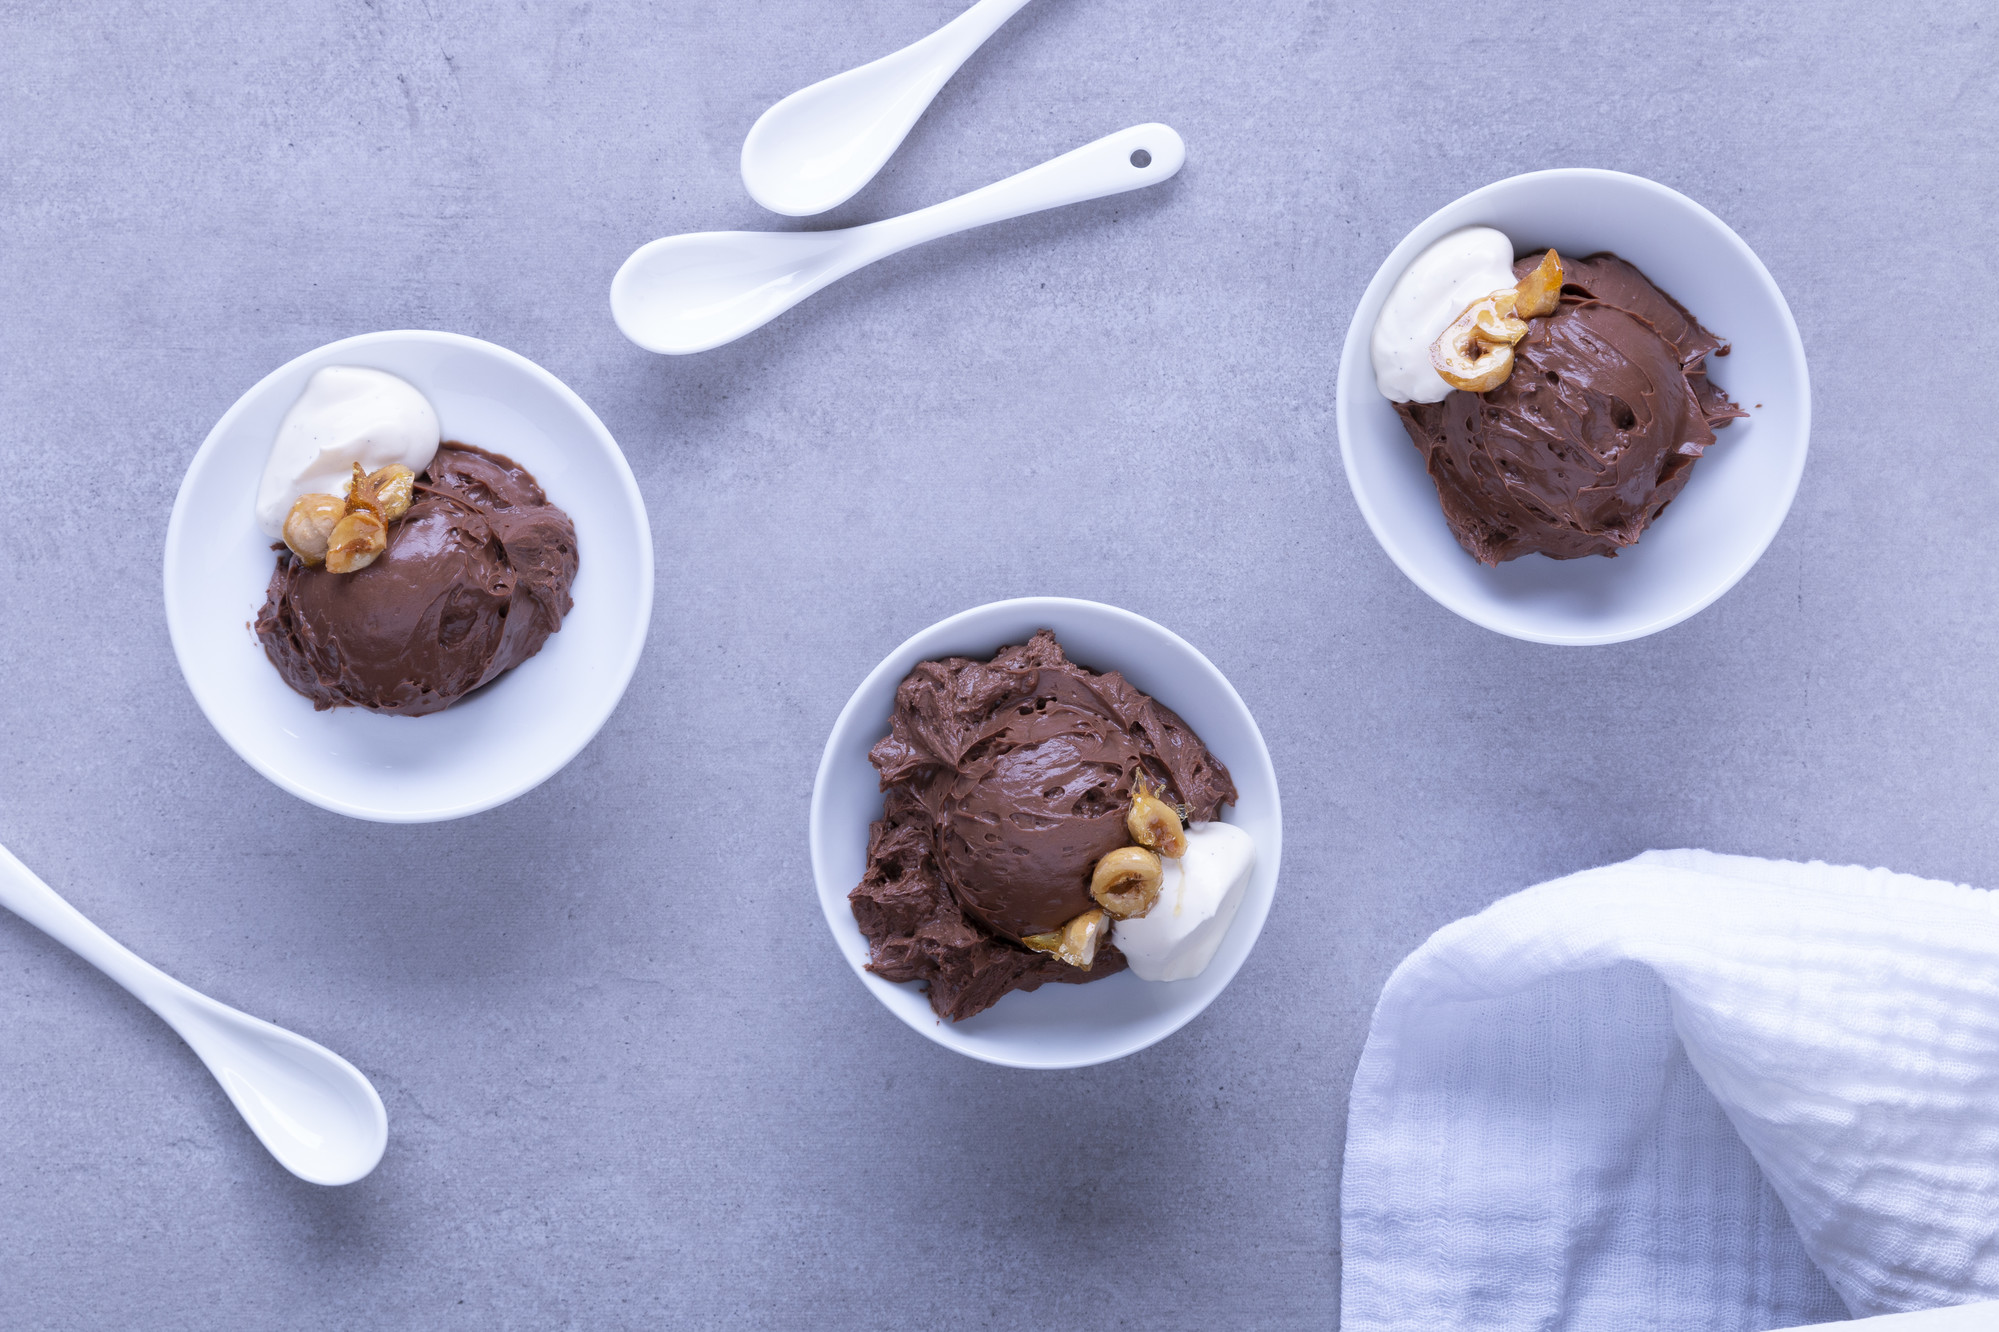 3 bowls of chocolate coffee mousse